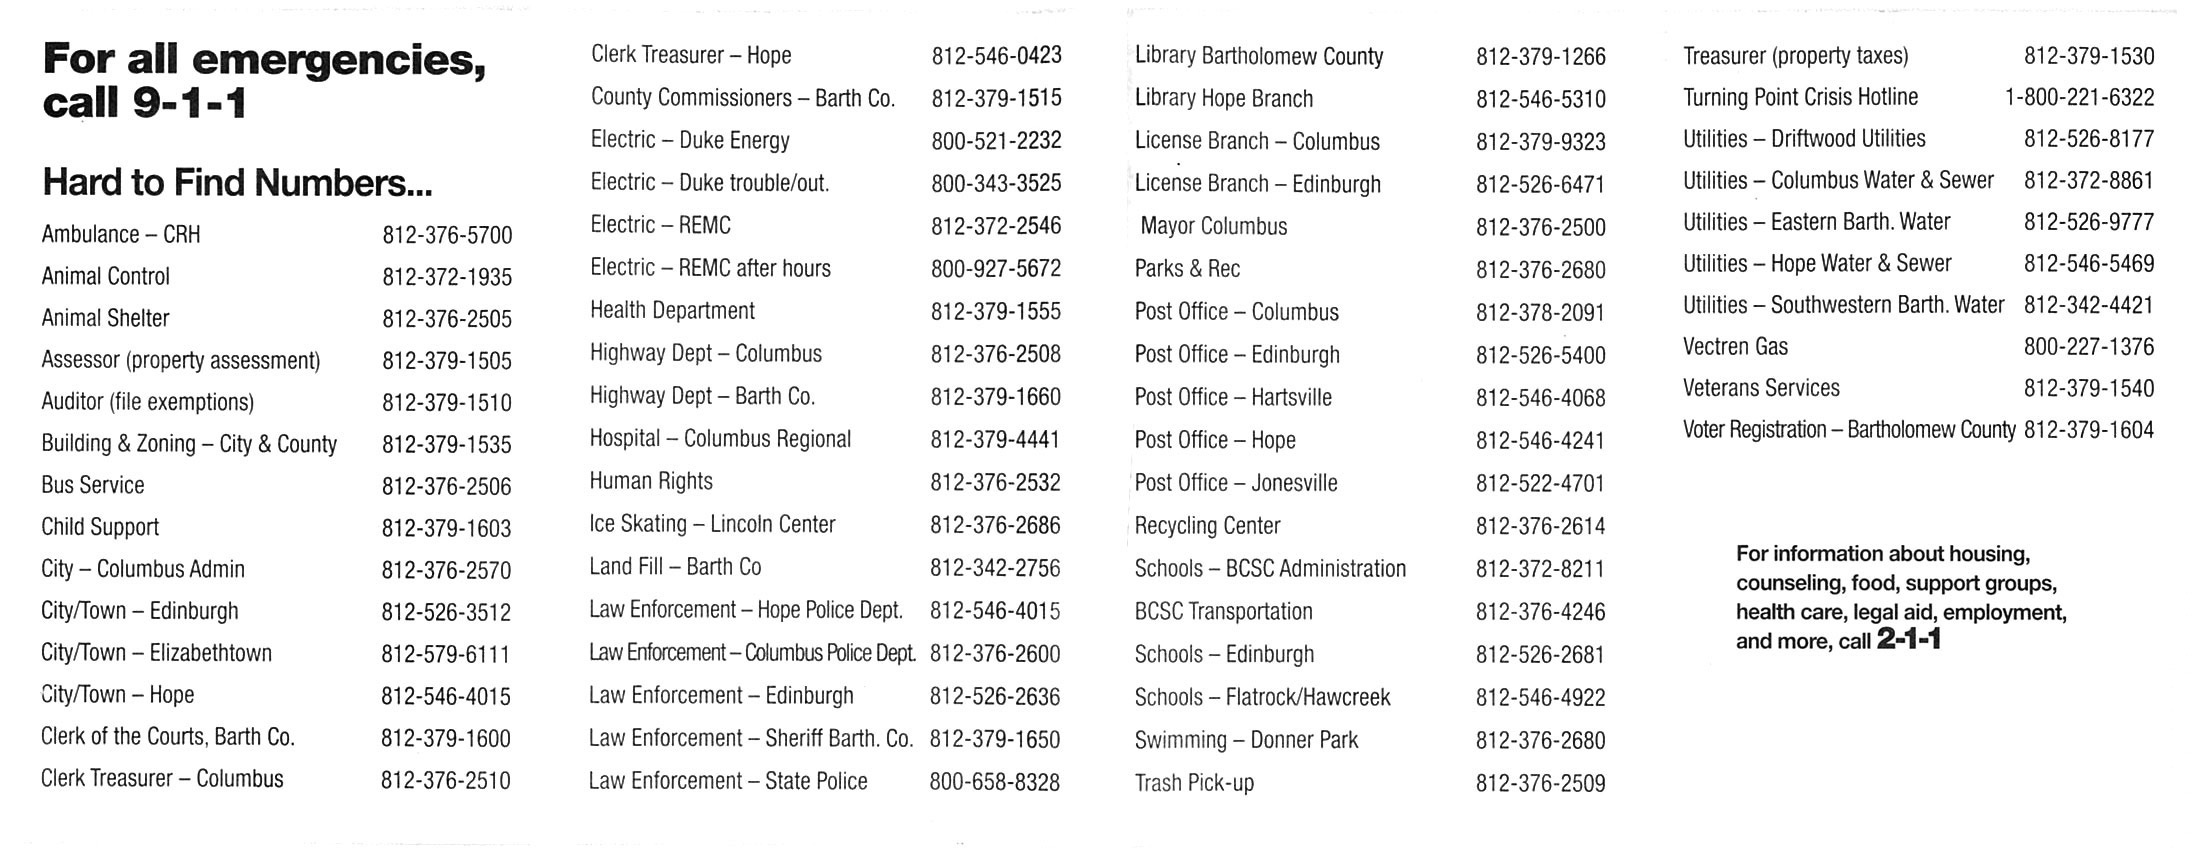 phone-list-hard-to-find-numbers